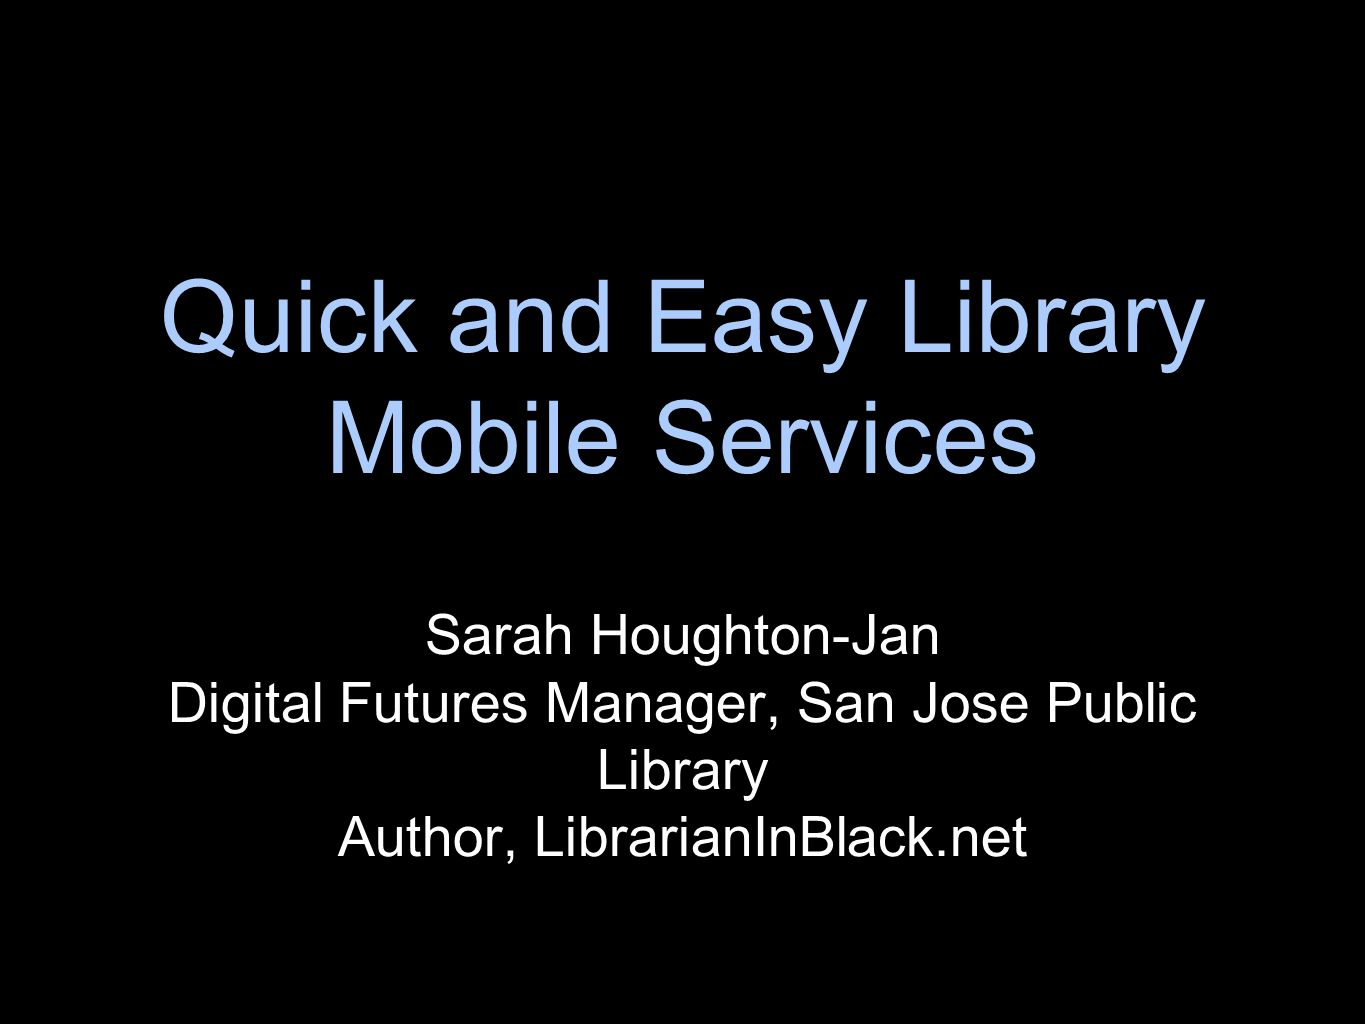 Quick and Easy Library Mobile Services Sarah Houghton-Jan Digital Futures Manager, San Jose Public Library Author, LibrarianInBlack.net